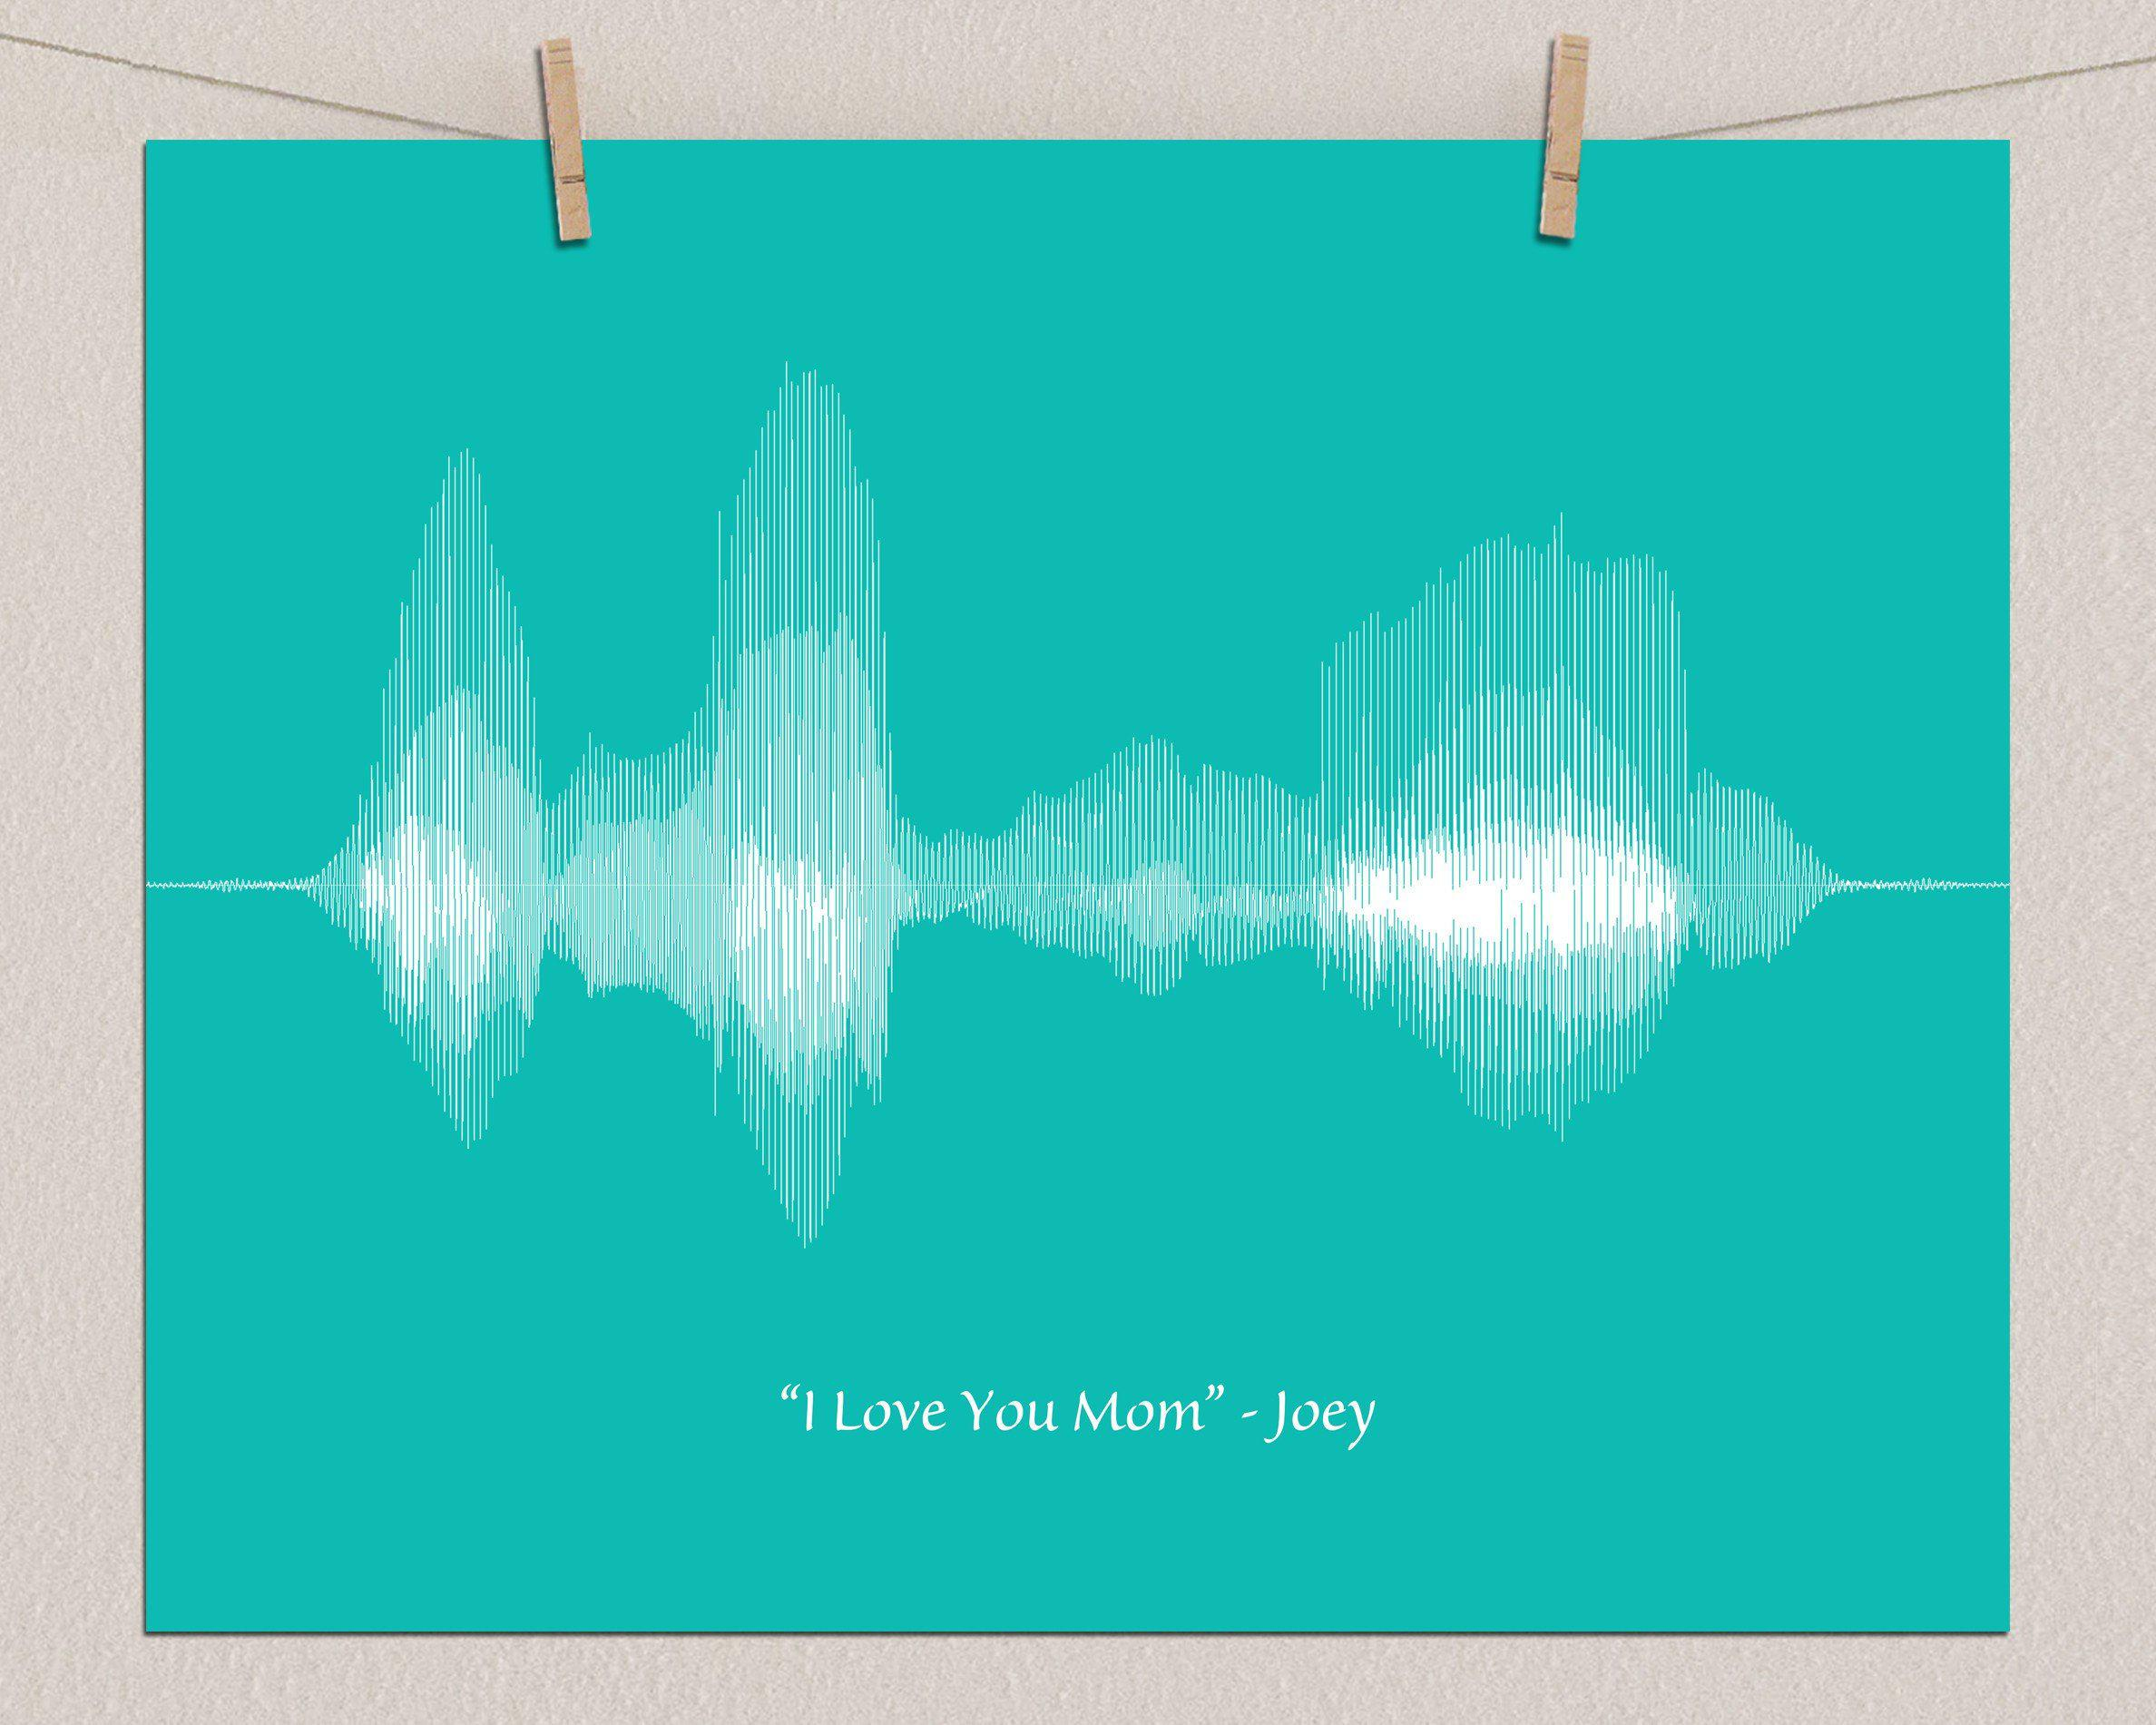 Meaningful Christmas Gifts for Mom from Son, Voice Art Soundwave ...